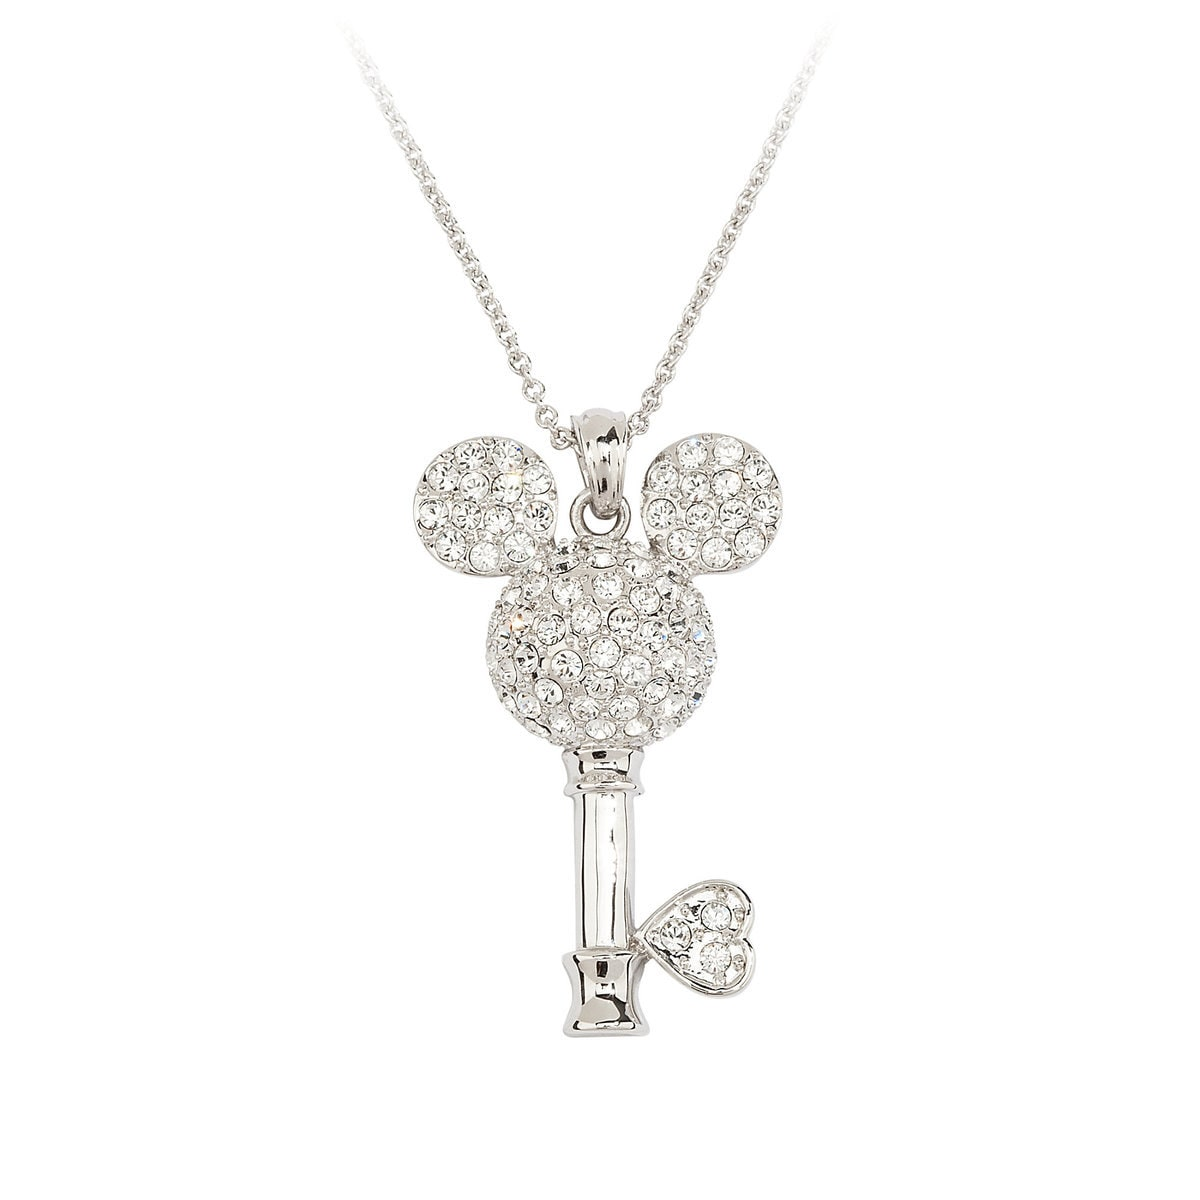 Mickey Mouse Crystal-Studded Key Necklace by Arribas | shopDisney